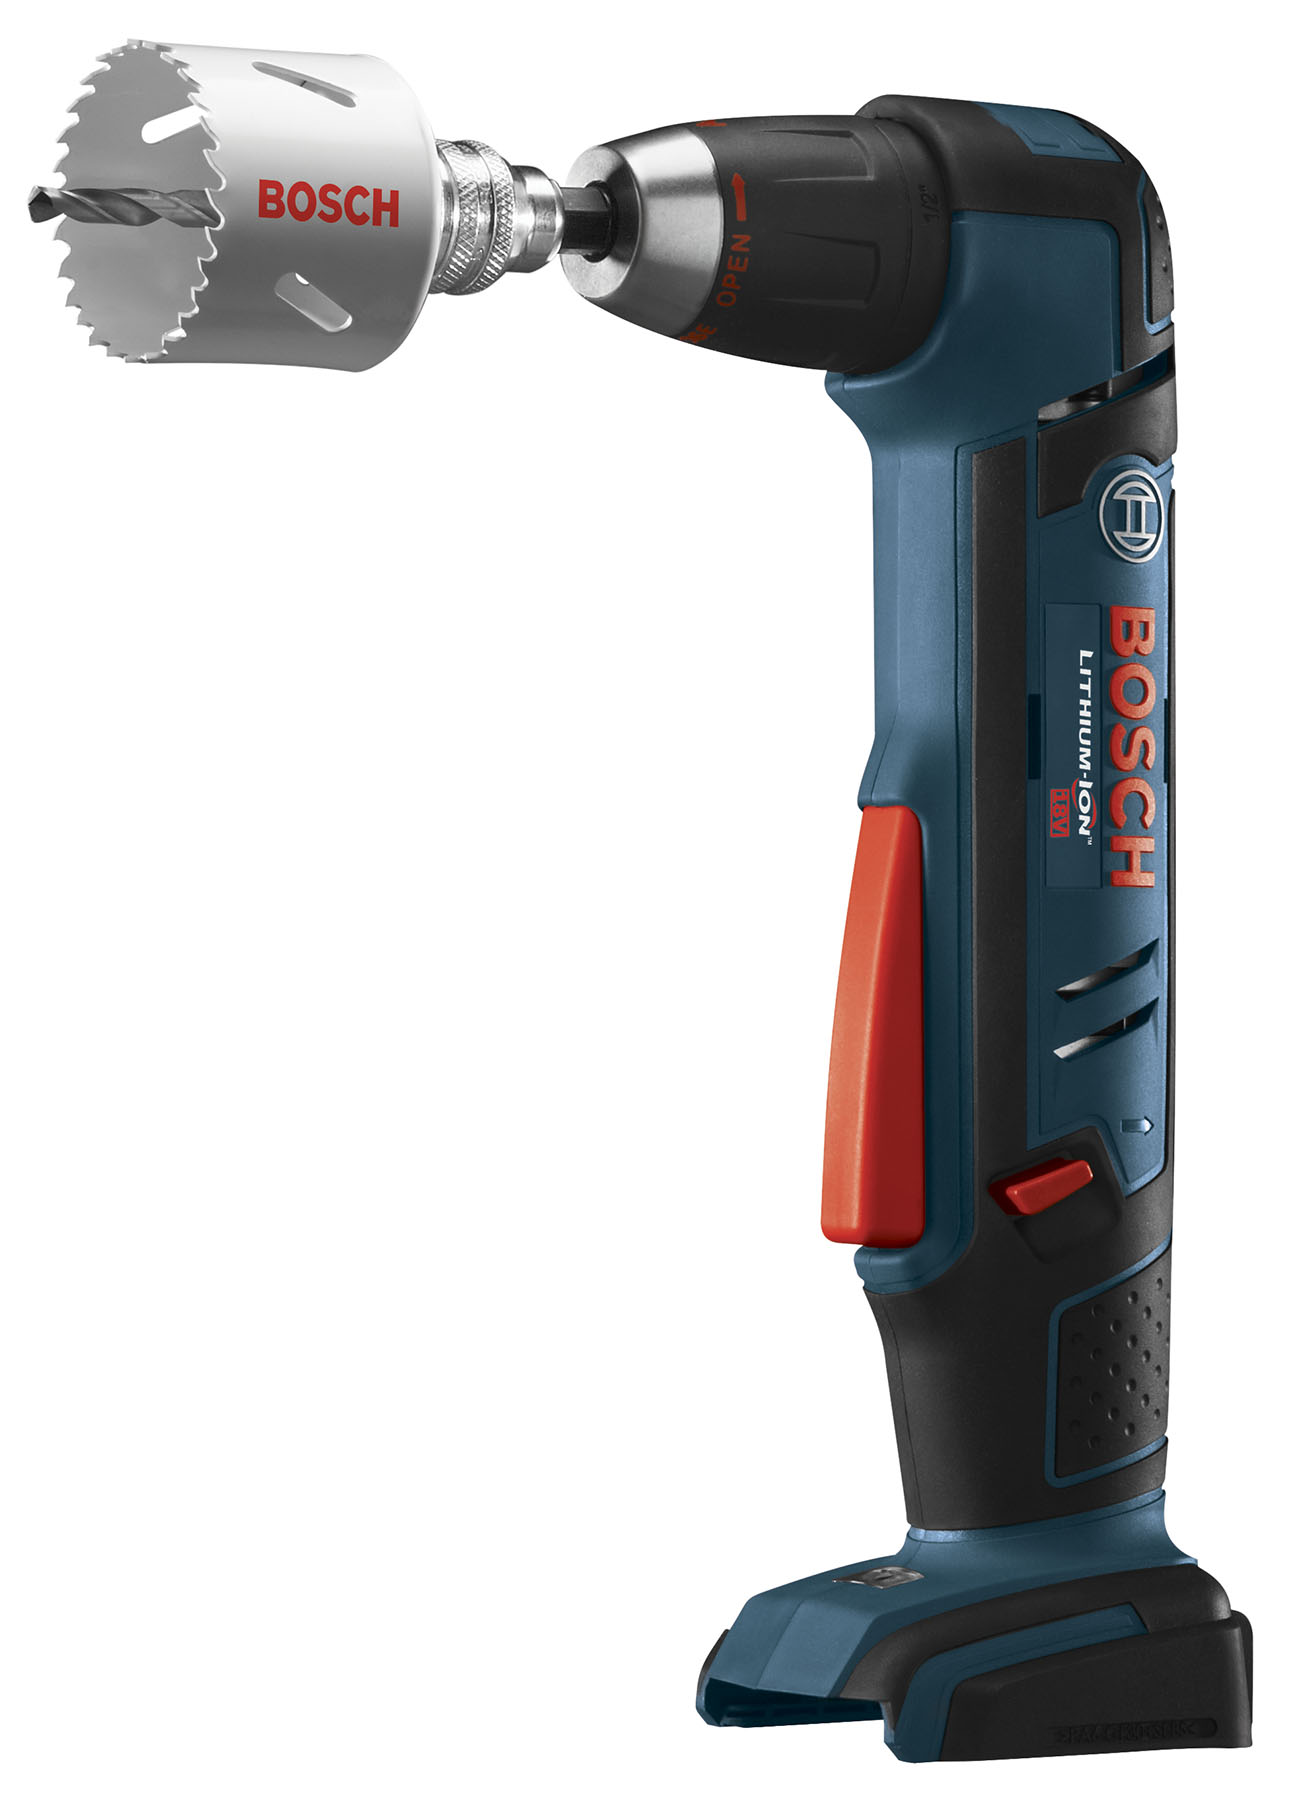 Cobalt Drill Bit Set >> ADS181BL | 18 V 1/2 In. Right Angle Drill | Bosch Power Tools